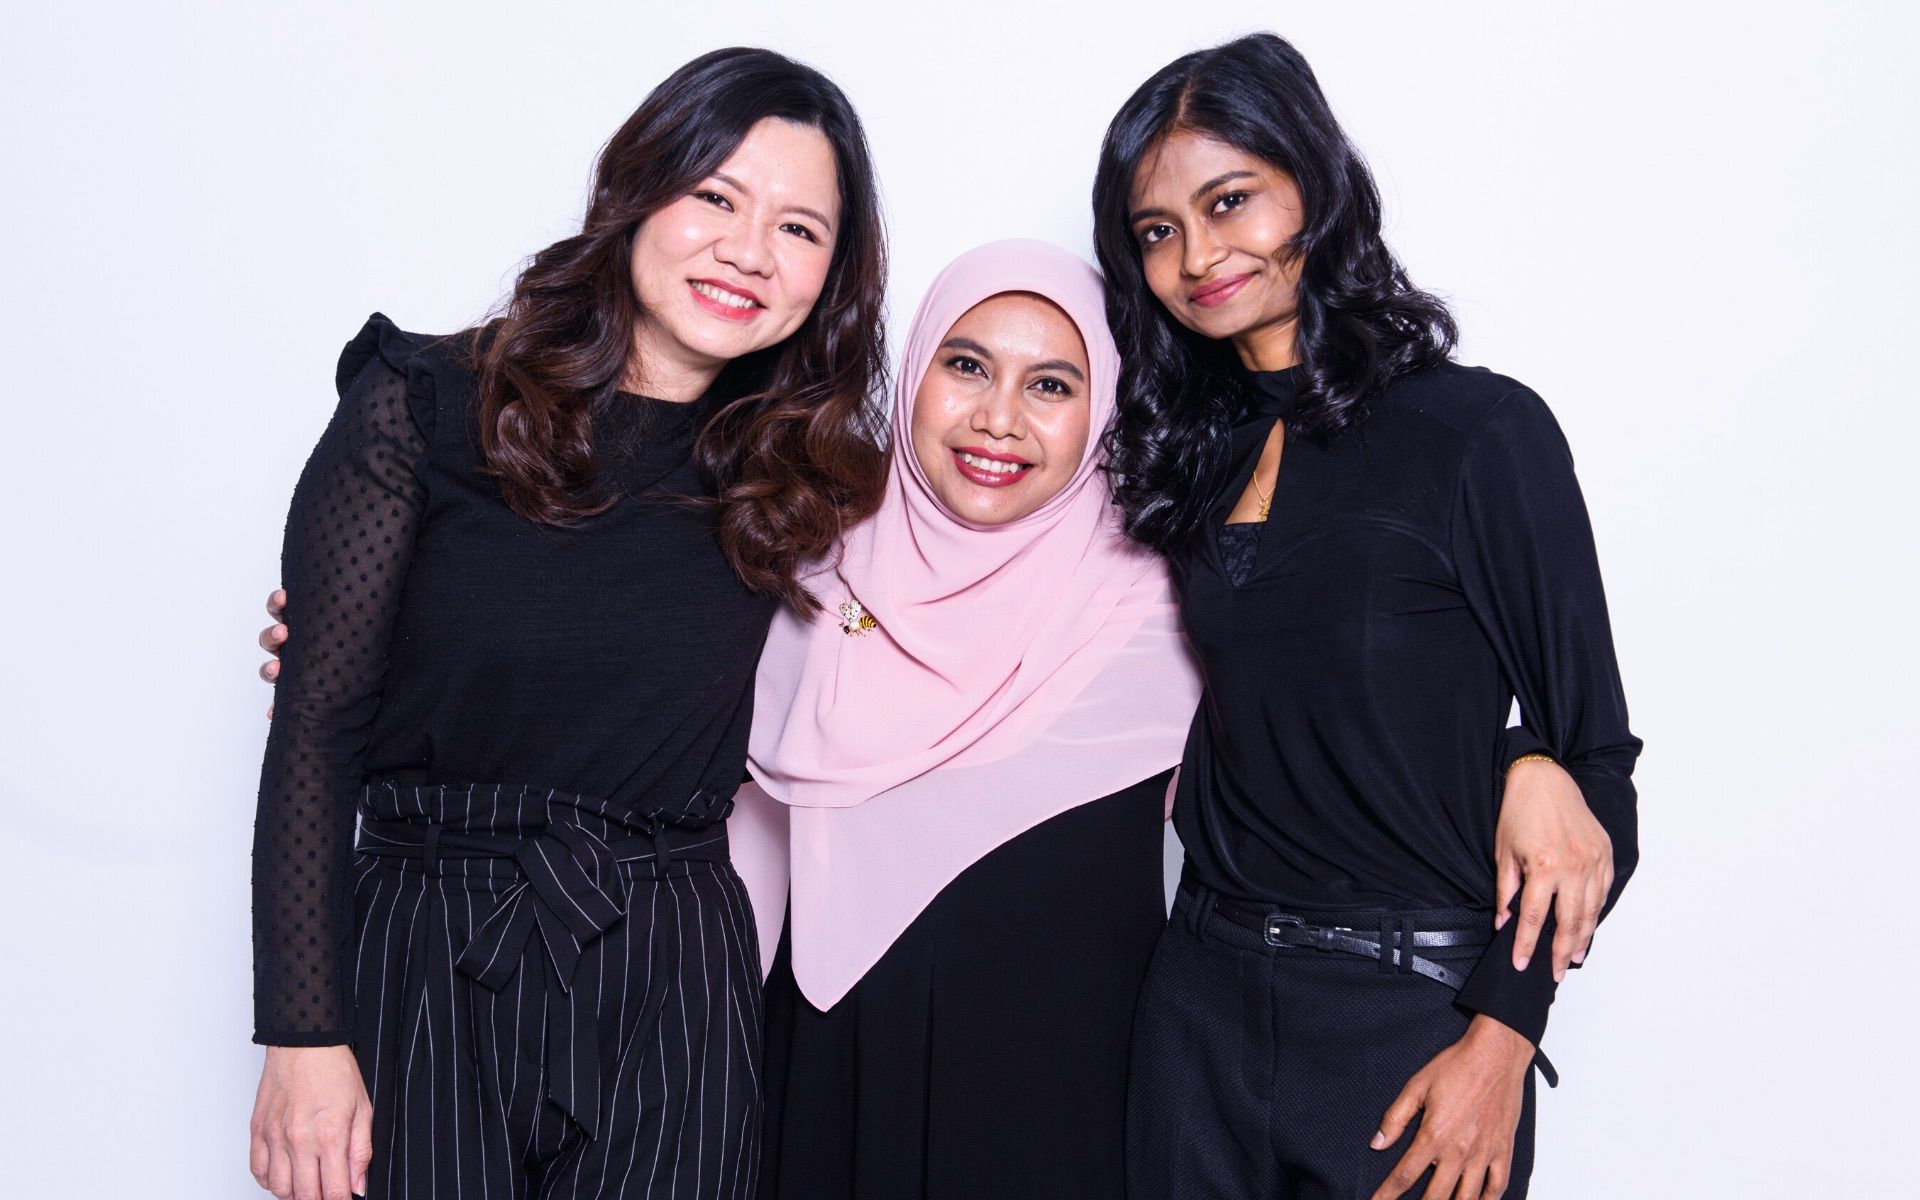 How The 3 Winners Of L'Oreal-UNESCO For Women In Science 2019 Award Strive To Make A Difference